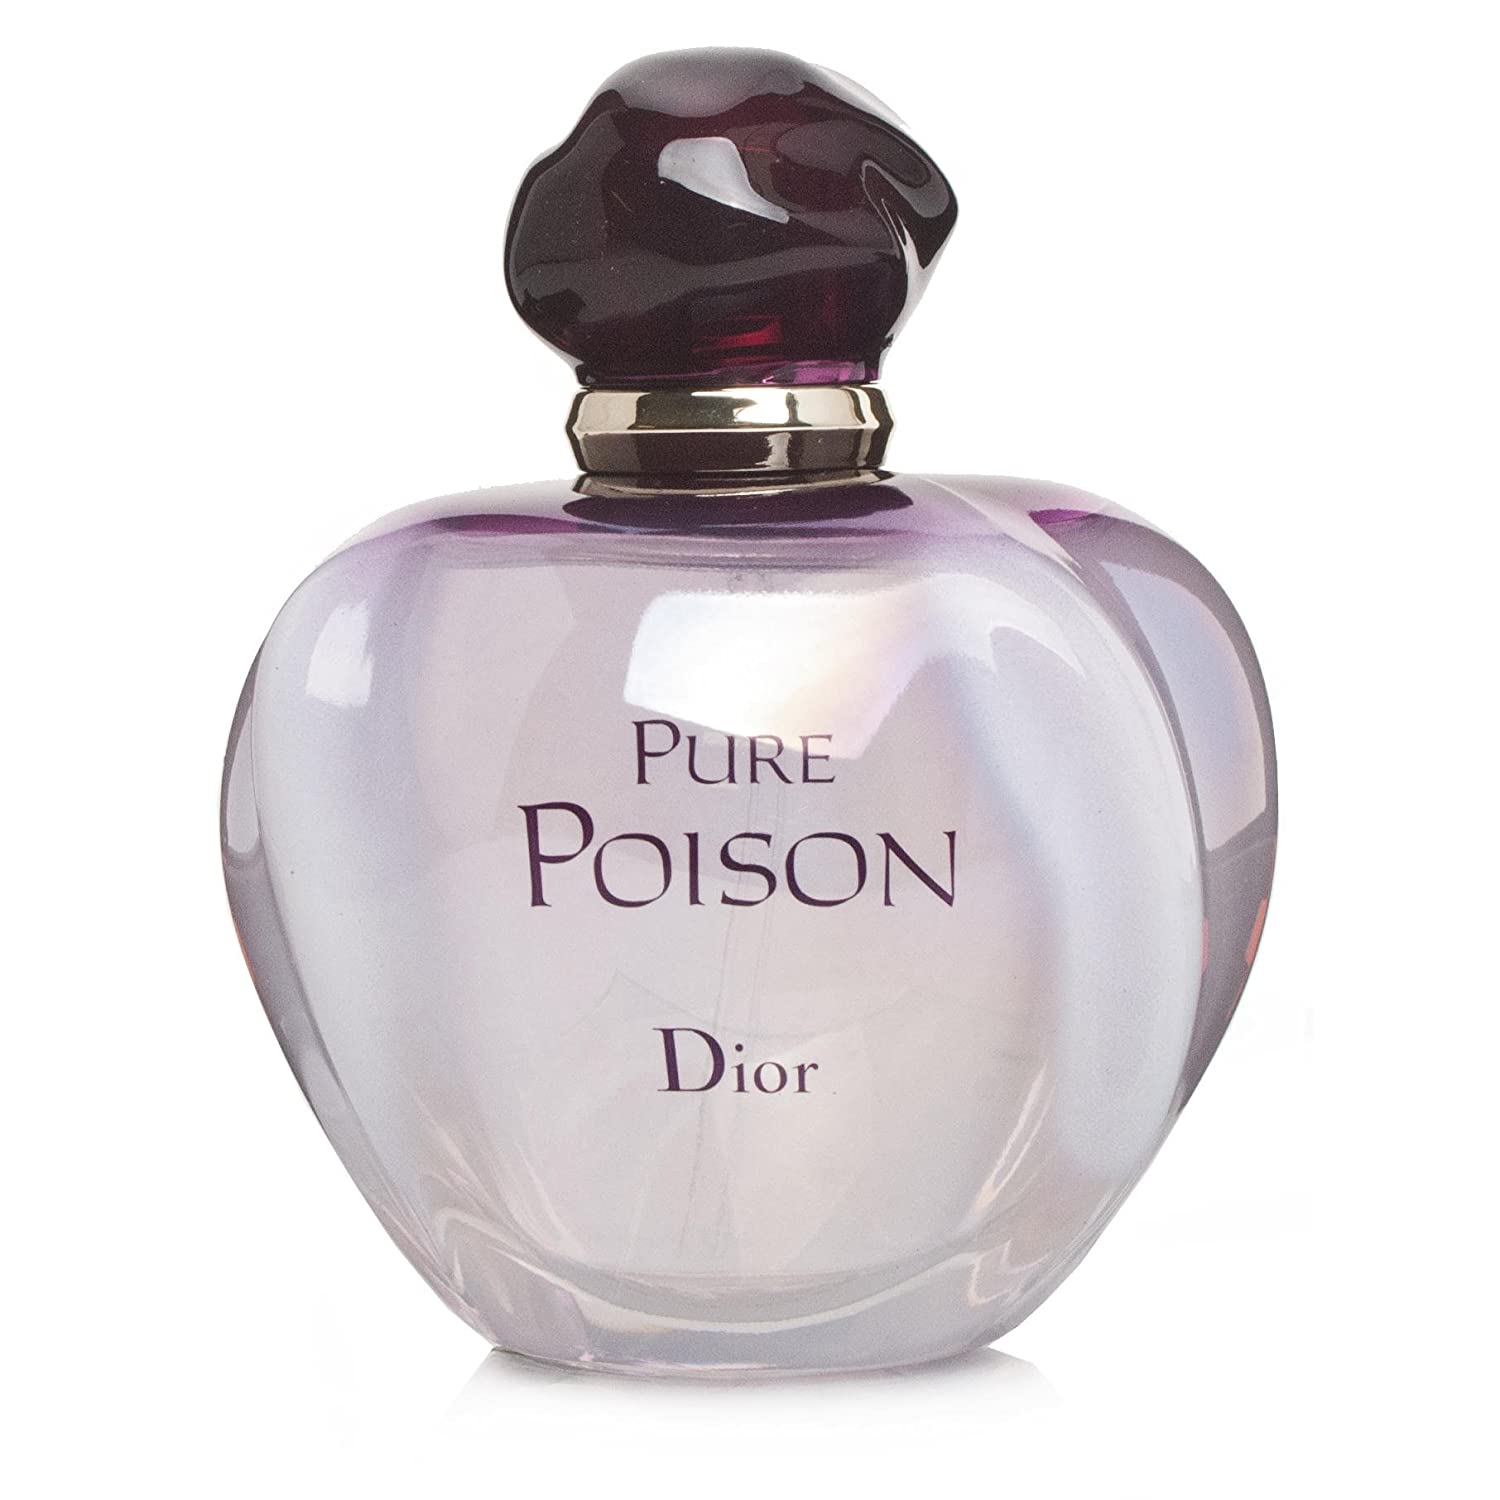 Buy Pure Poison By Christian Dior For Women Eau De Parfum Spray 17 Jadore Edp 100ml Oz Online At Low Prices In India